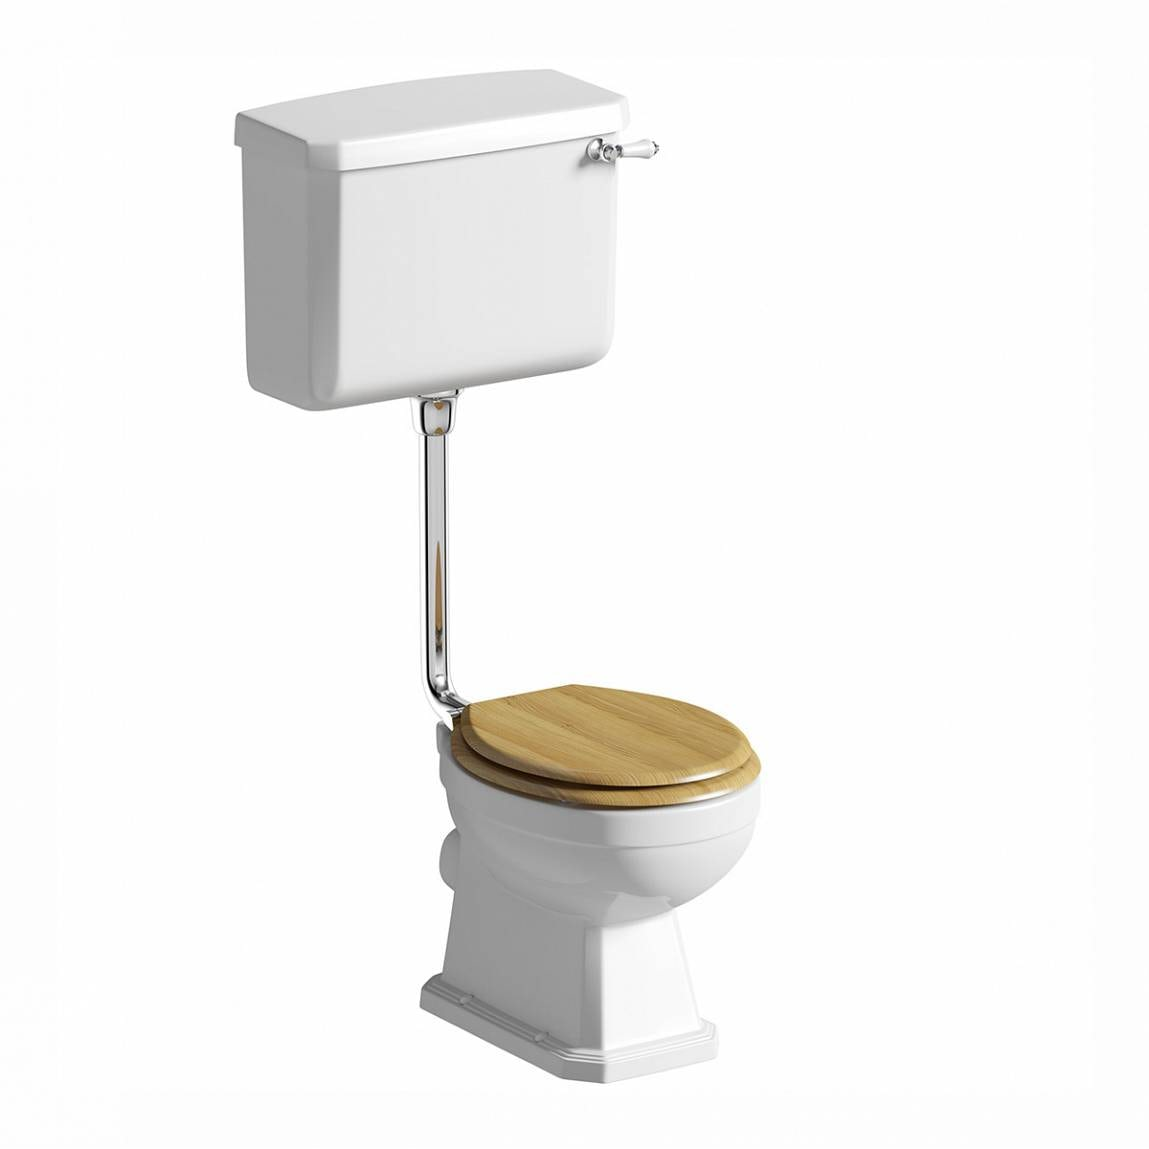 Regency Low Level Toilet Incl Luxury Solid Oak Seat